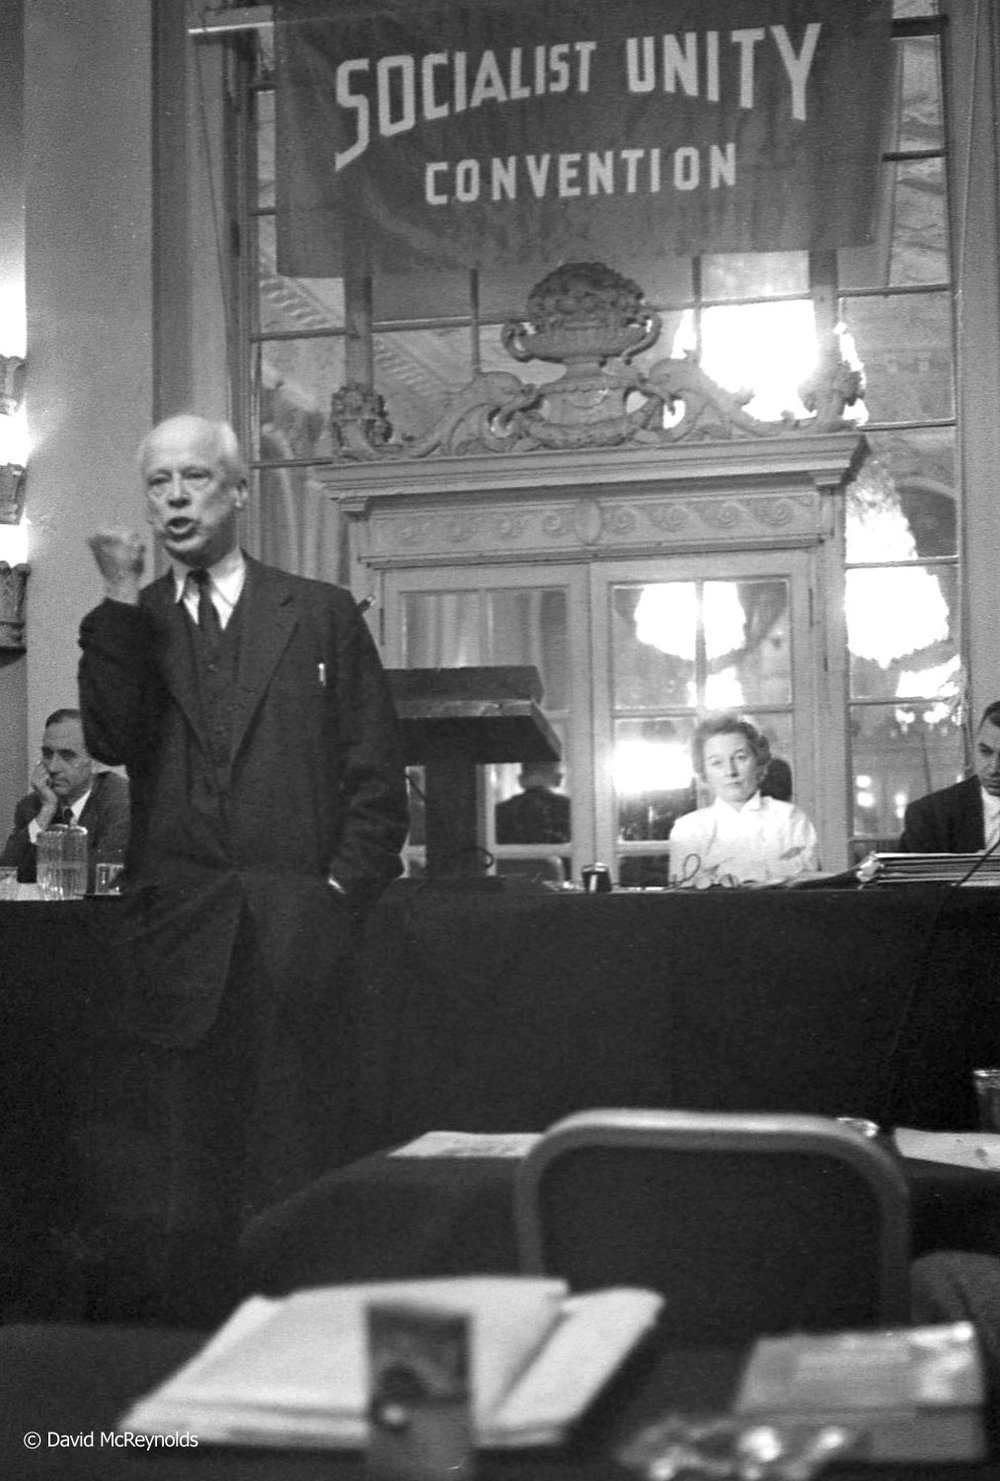 Norman Thomas (SP) speaking at the convention.